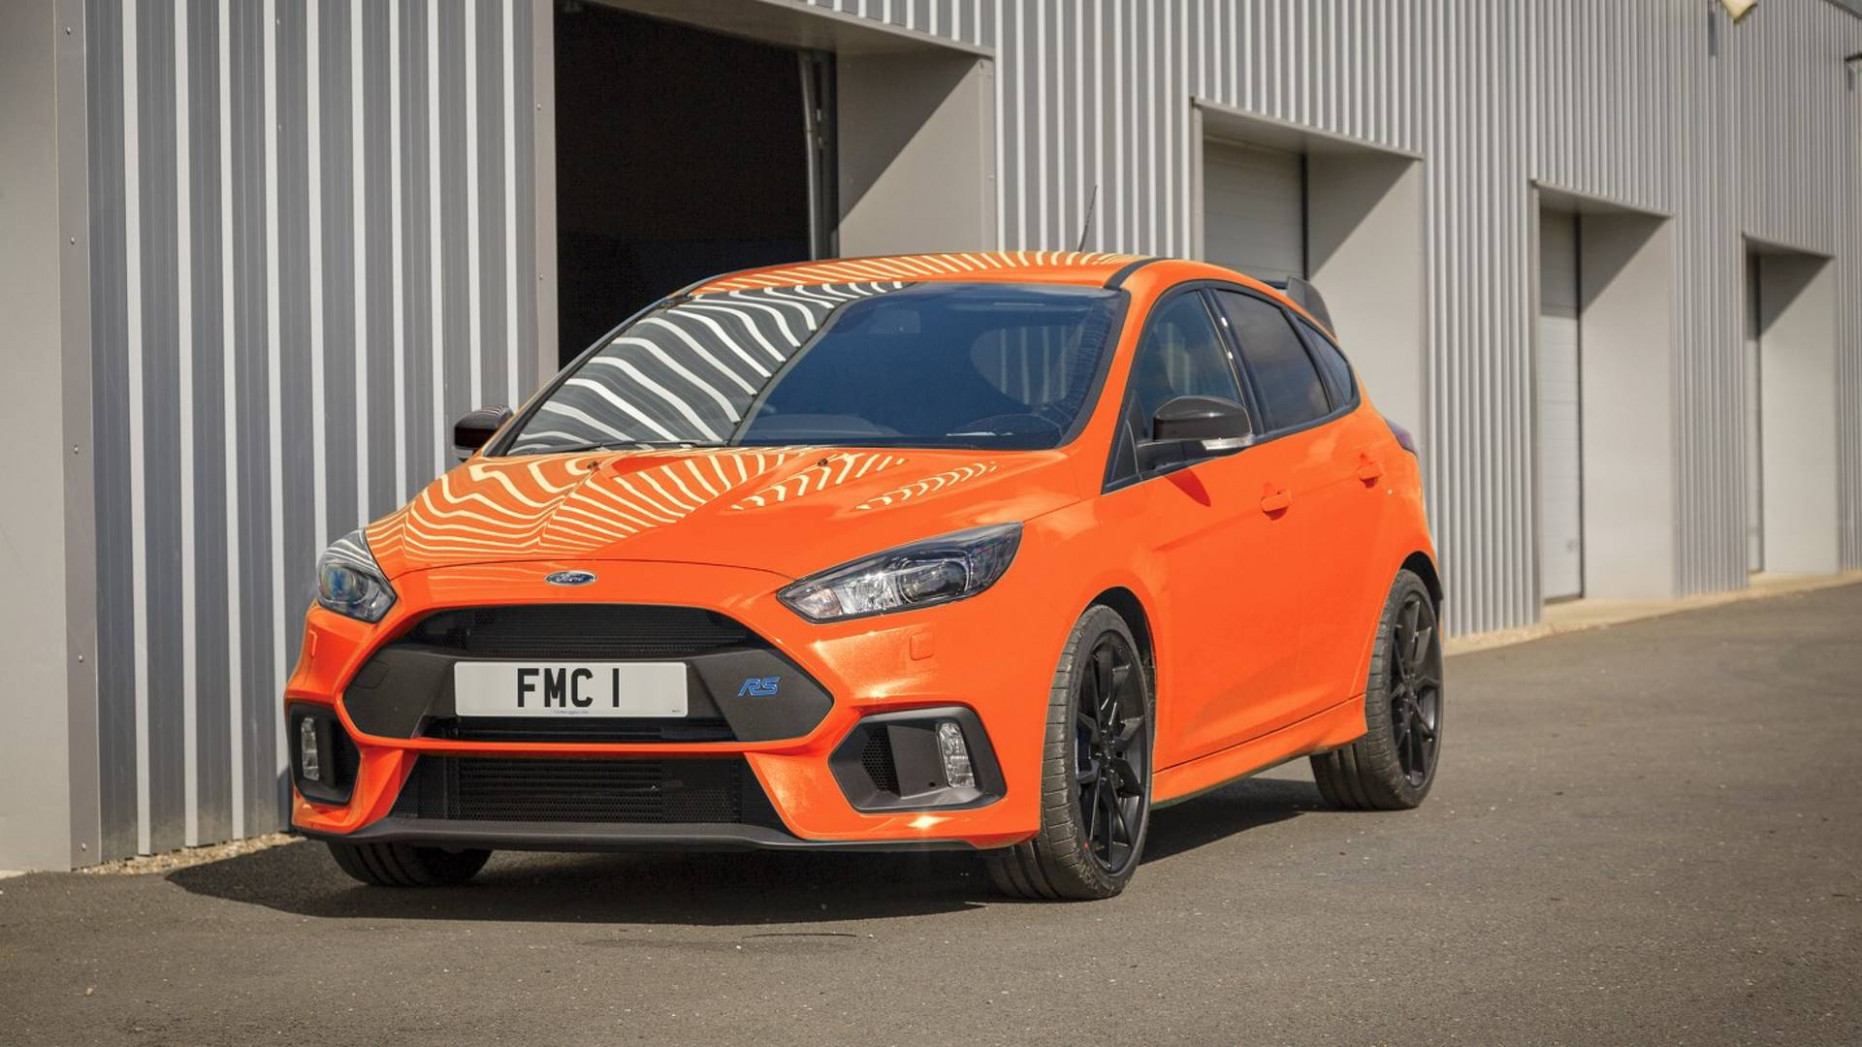 New Concept 2022 Ford Fiesta St Rs